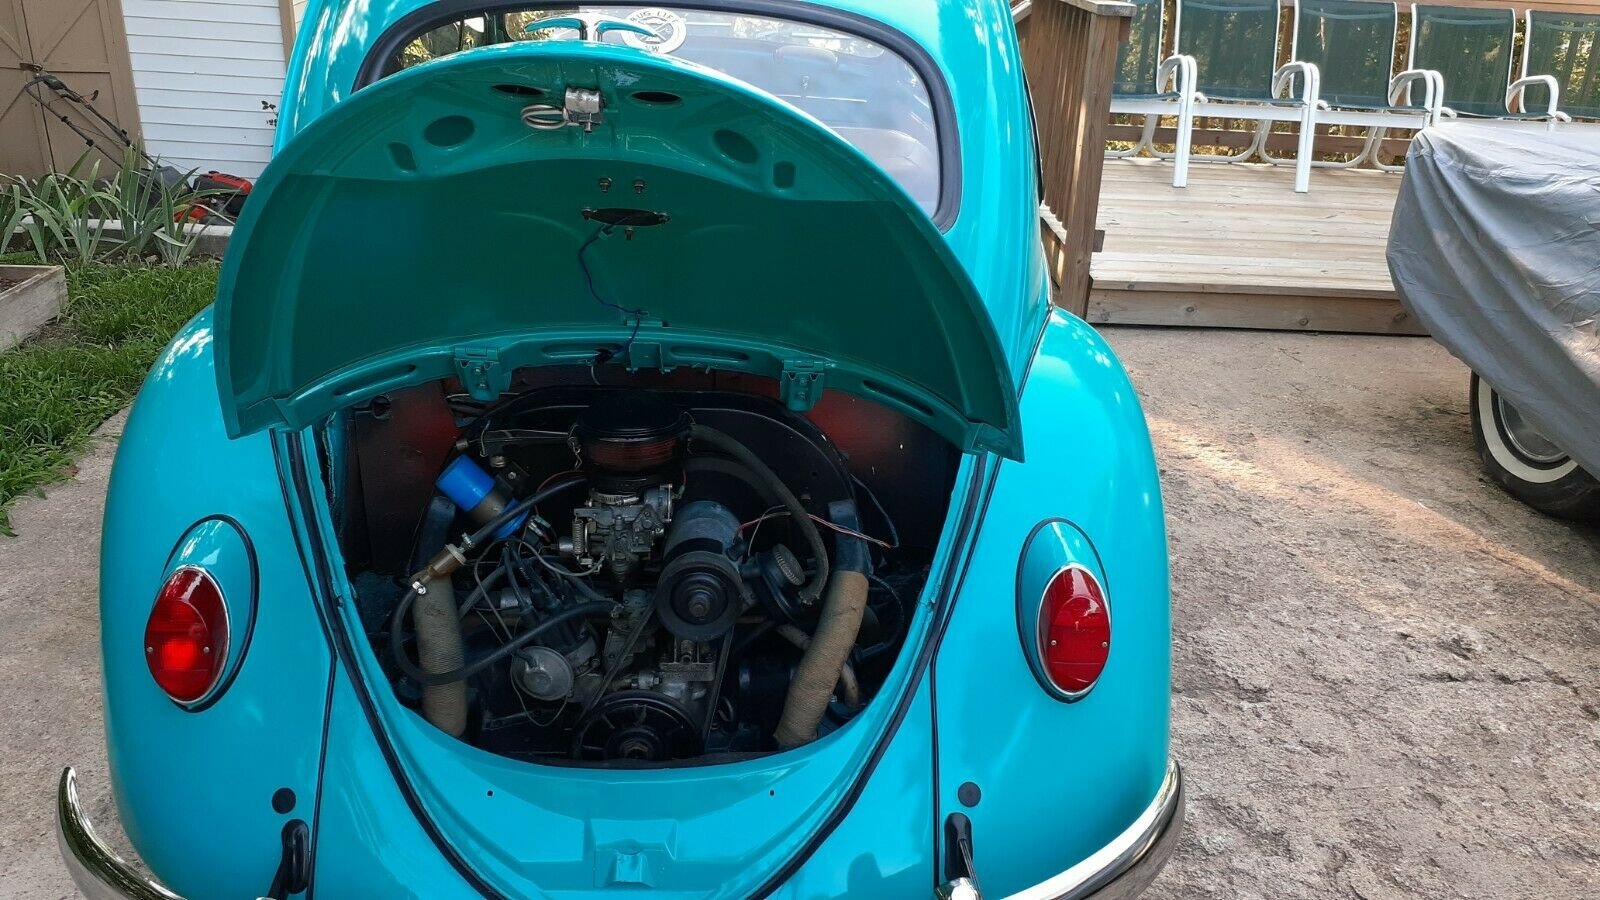 1962 Volkswagen Beetle sedan engine